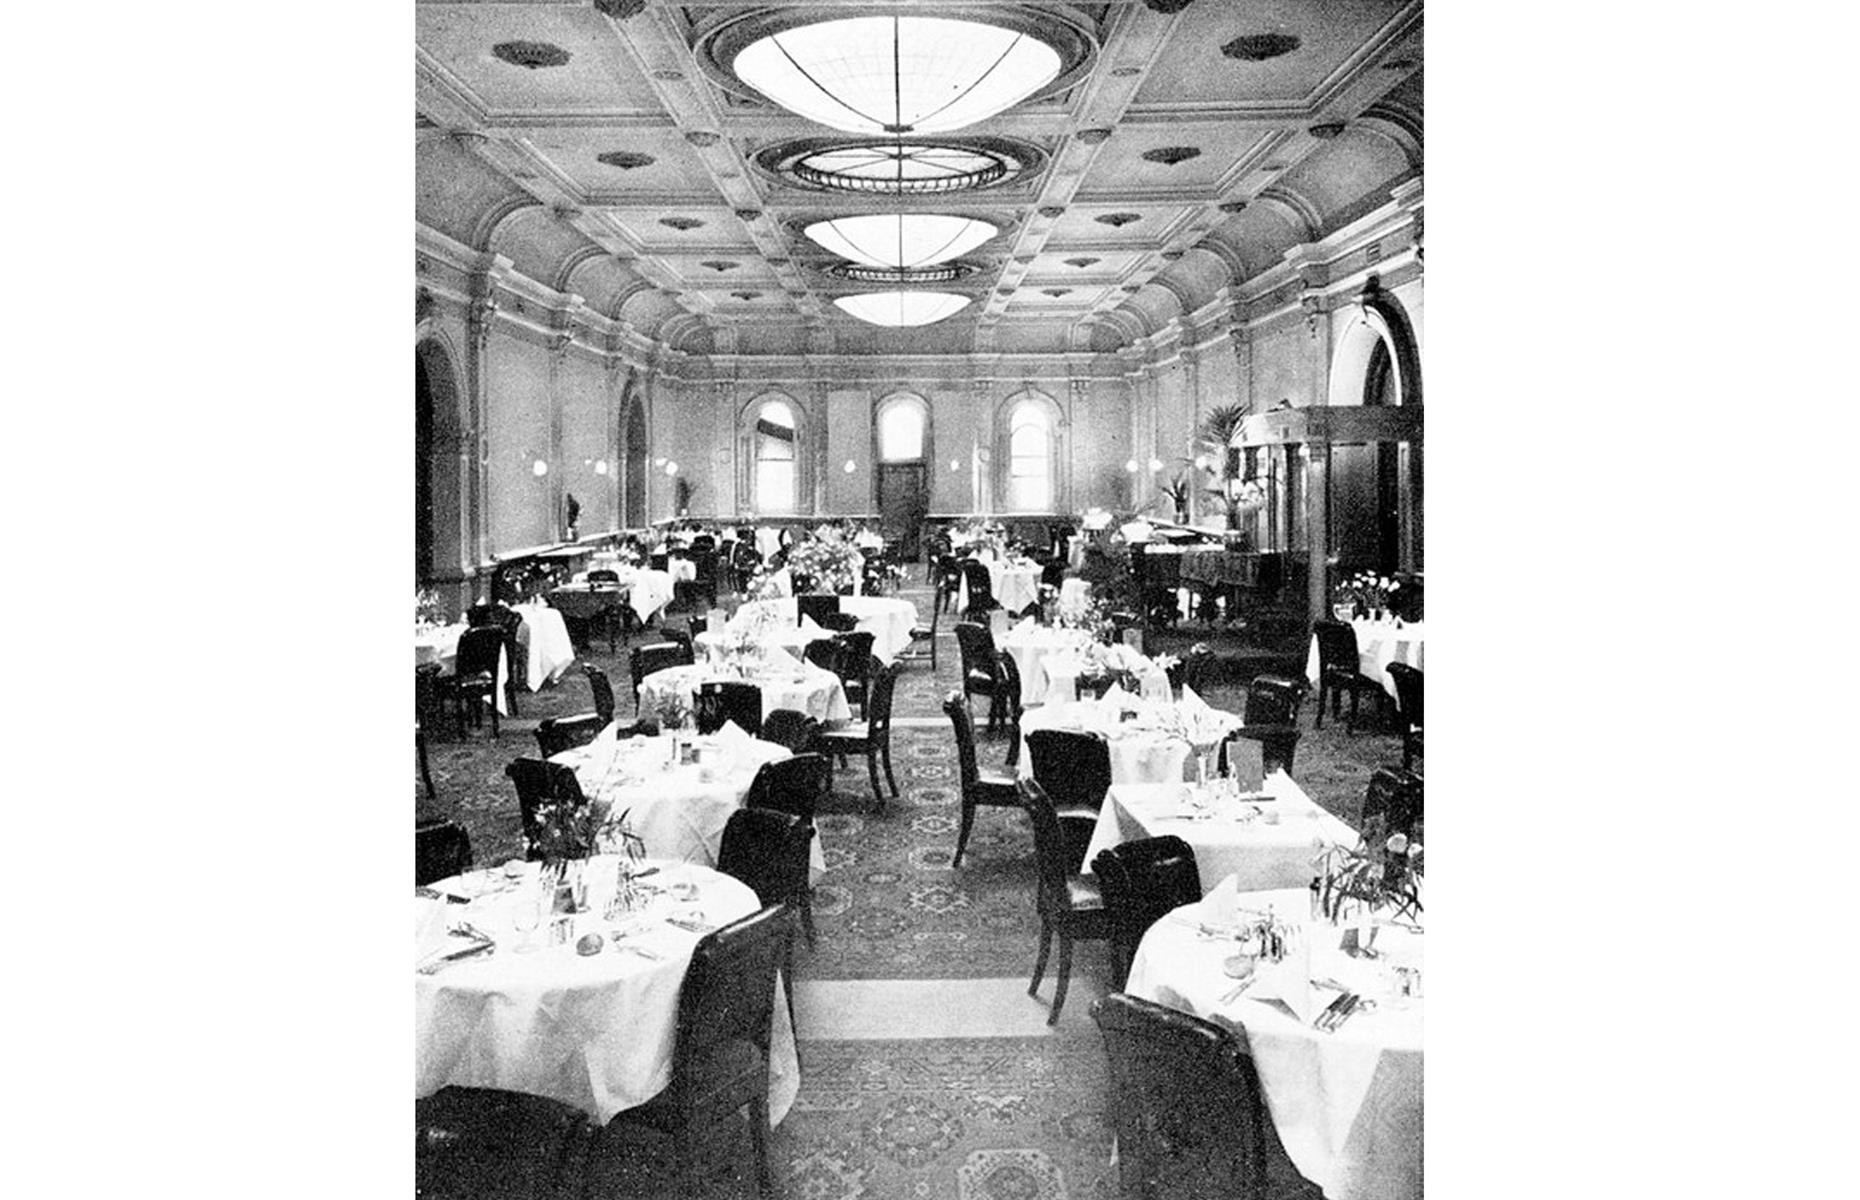 Slide 12 of 41: In 1923, the hotel, which had just been refurbished, hosted a luncheon attended by the Prince of Wales (later Edward VIII) – and was renamed in his honor. The English cricket team has also stayed here, with nearby factory workers apparently loudly knocking over milk urns in an attempt to disturb their sleep (and hinder their performance against the Aussies). Today, period furnishings – from the antiques-stuffed lobby to the opulent, gilded ballroom with stained-glass windows – maintain a sense of history.